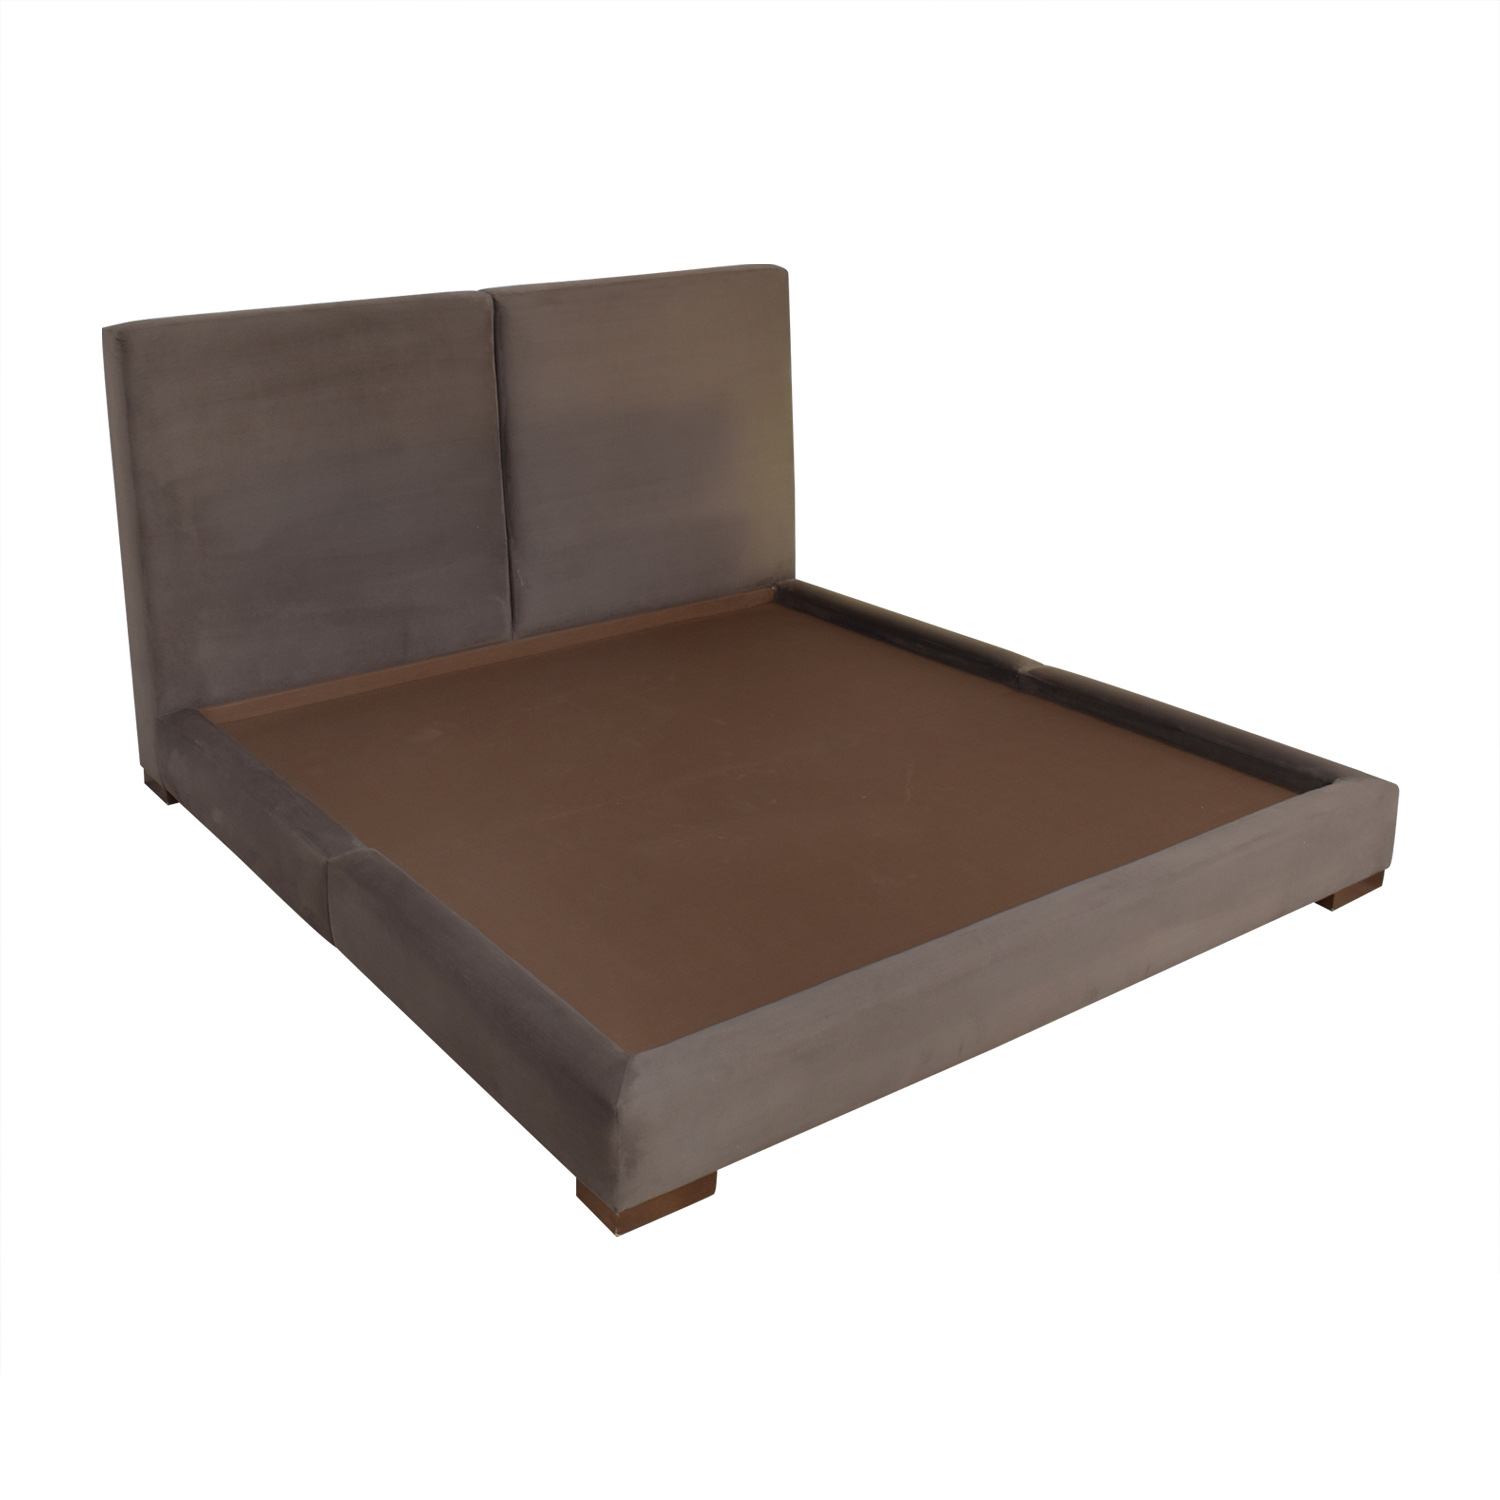 buy Richter Kelly King Size Bed with Headboard Richter Bed Frames